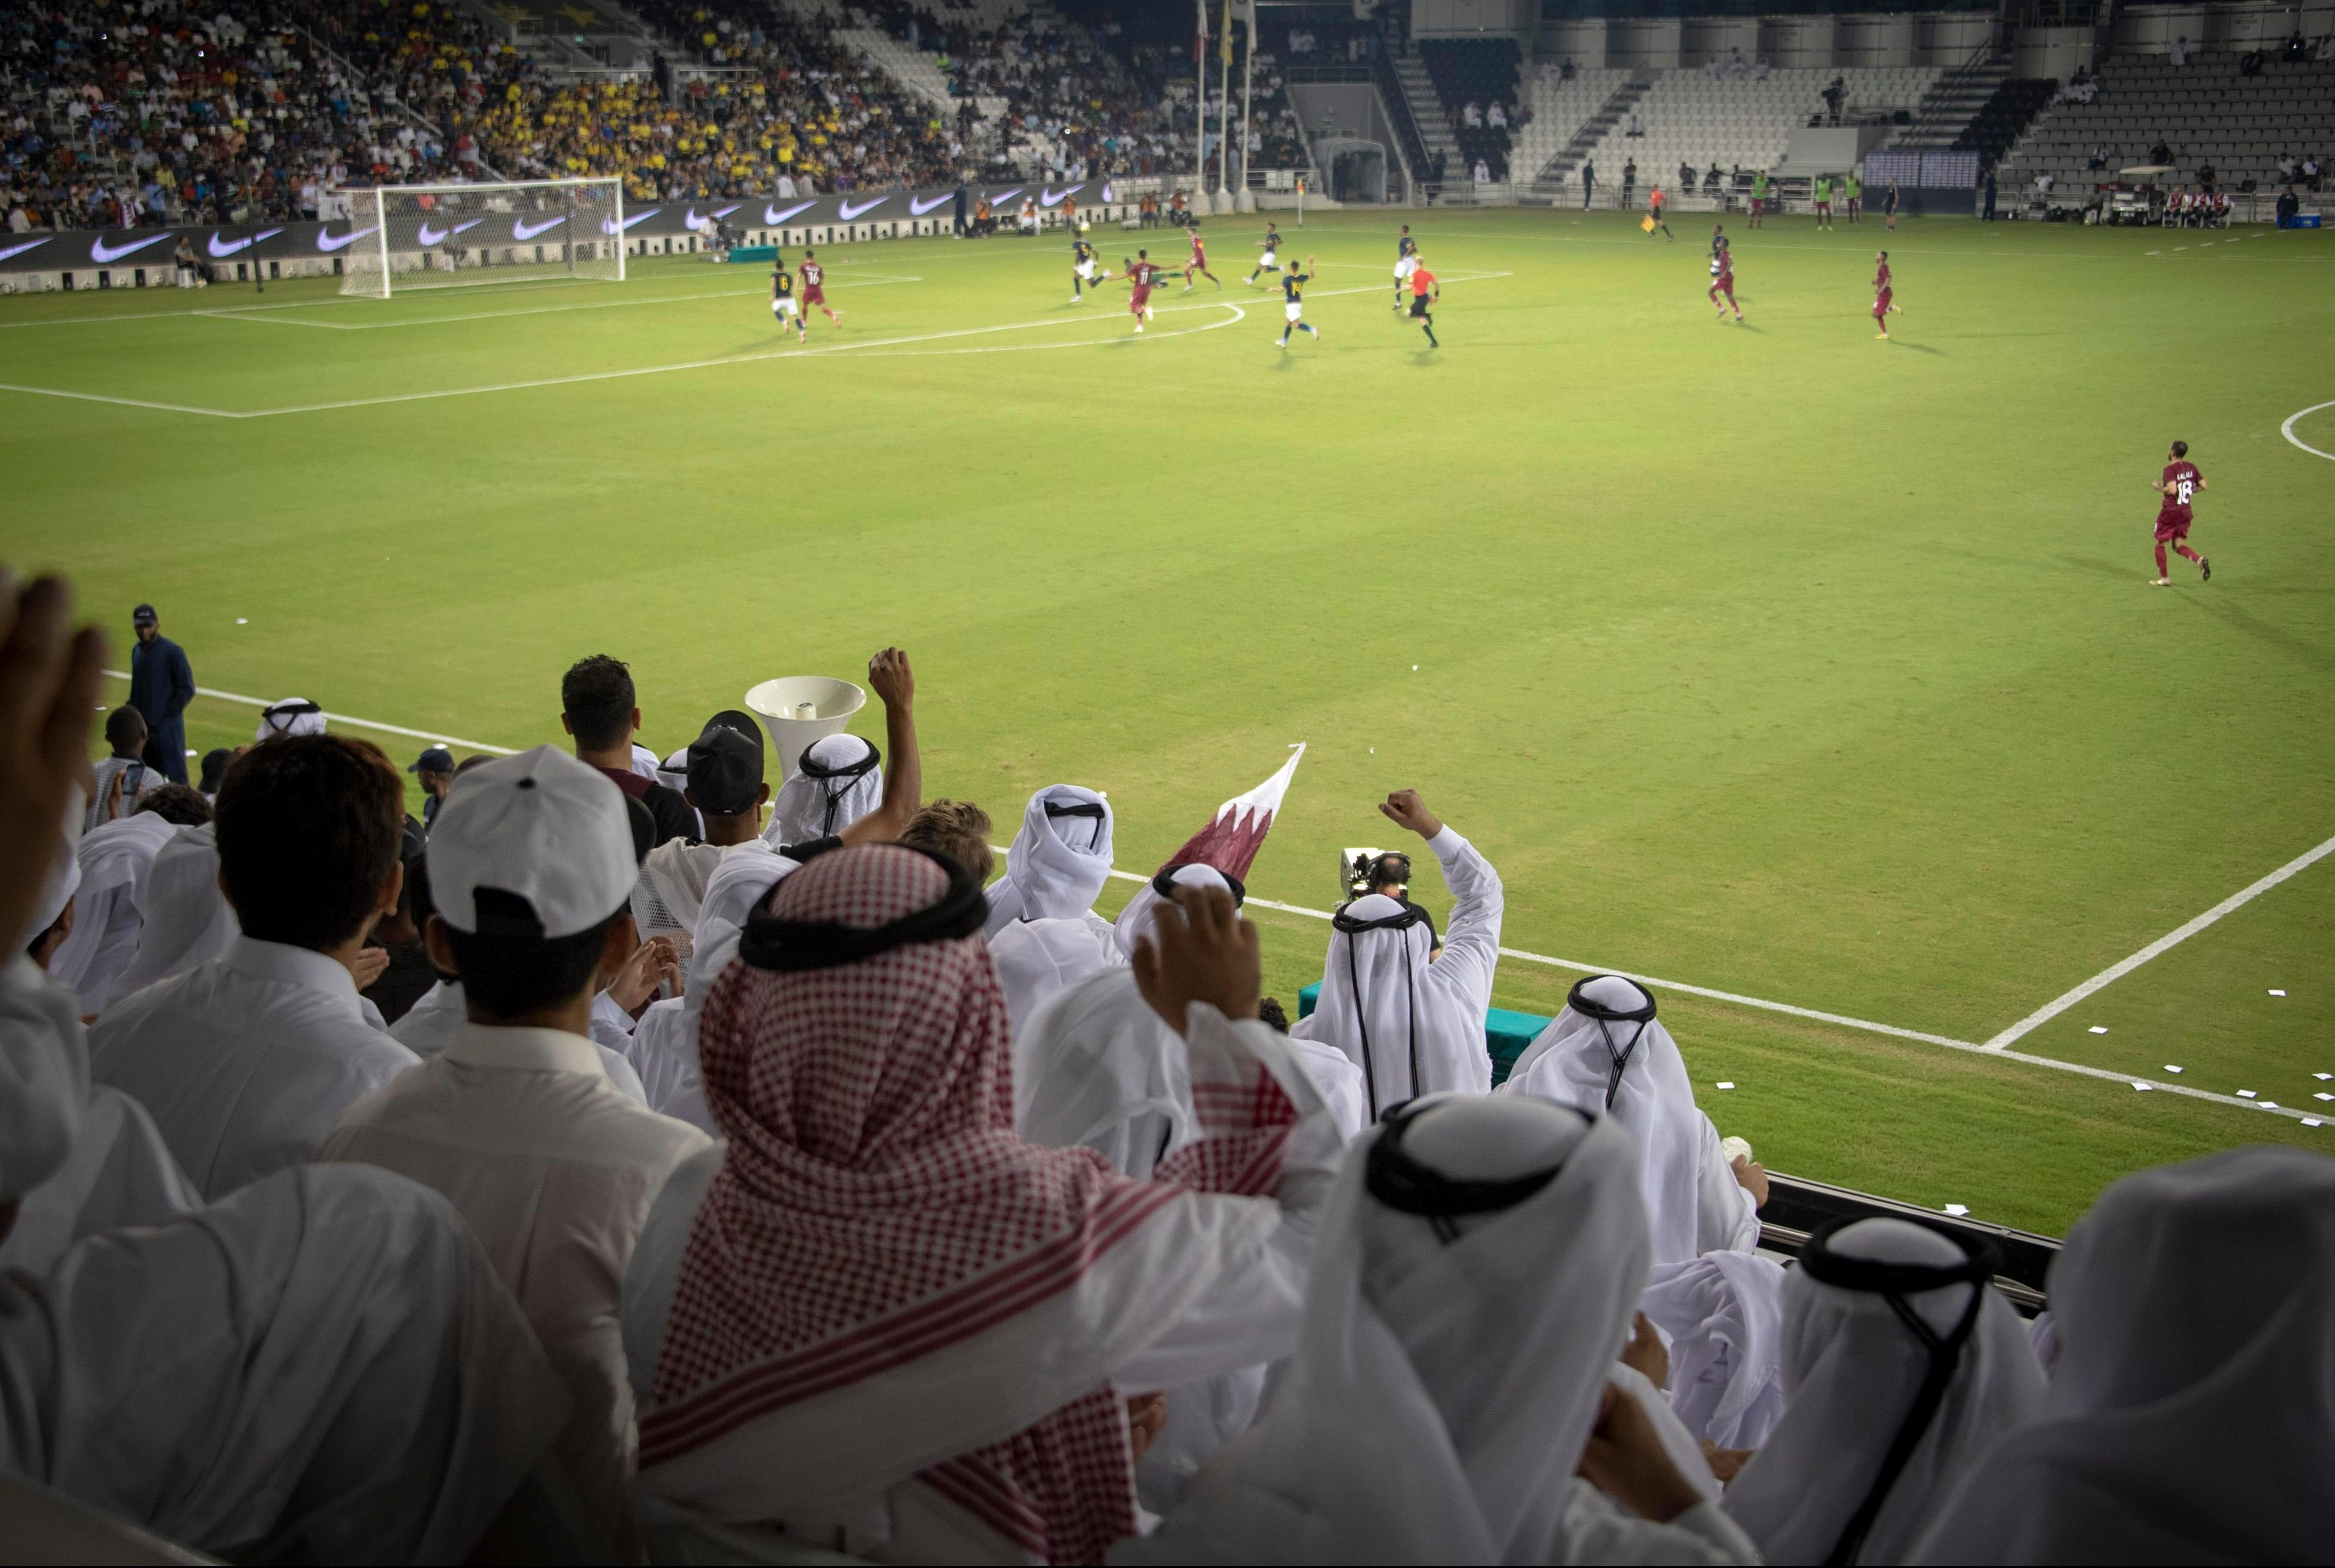 Qataris see their team beat Ecuador beat 4-3 in a friendly at the Al Saad stadium as the countdown to the next World Cup approaches